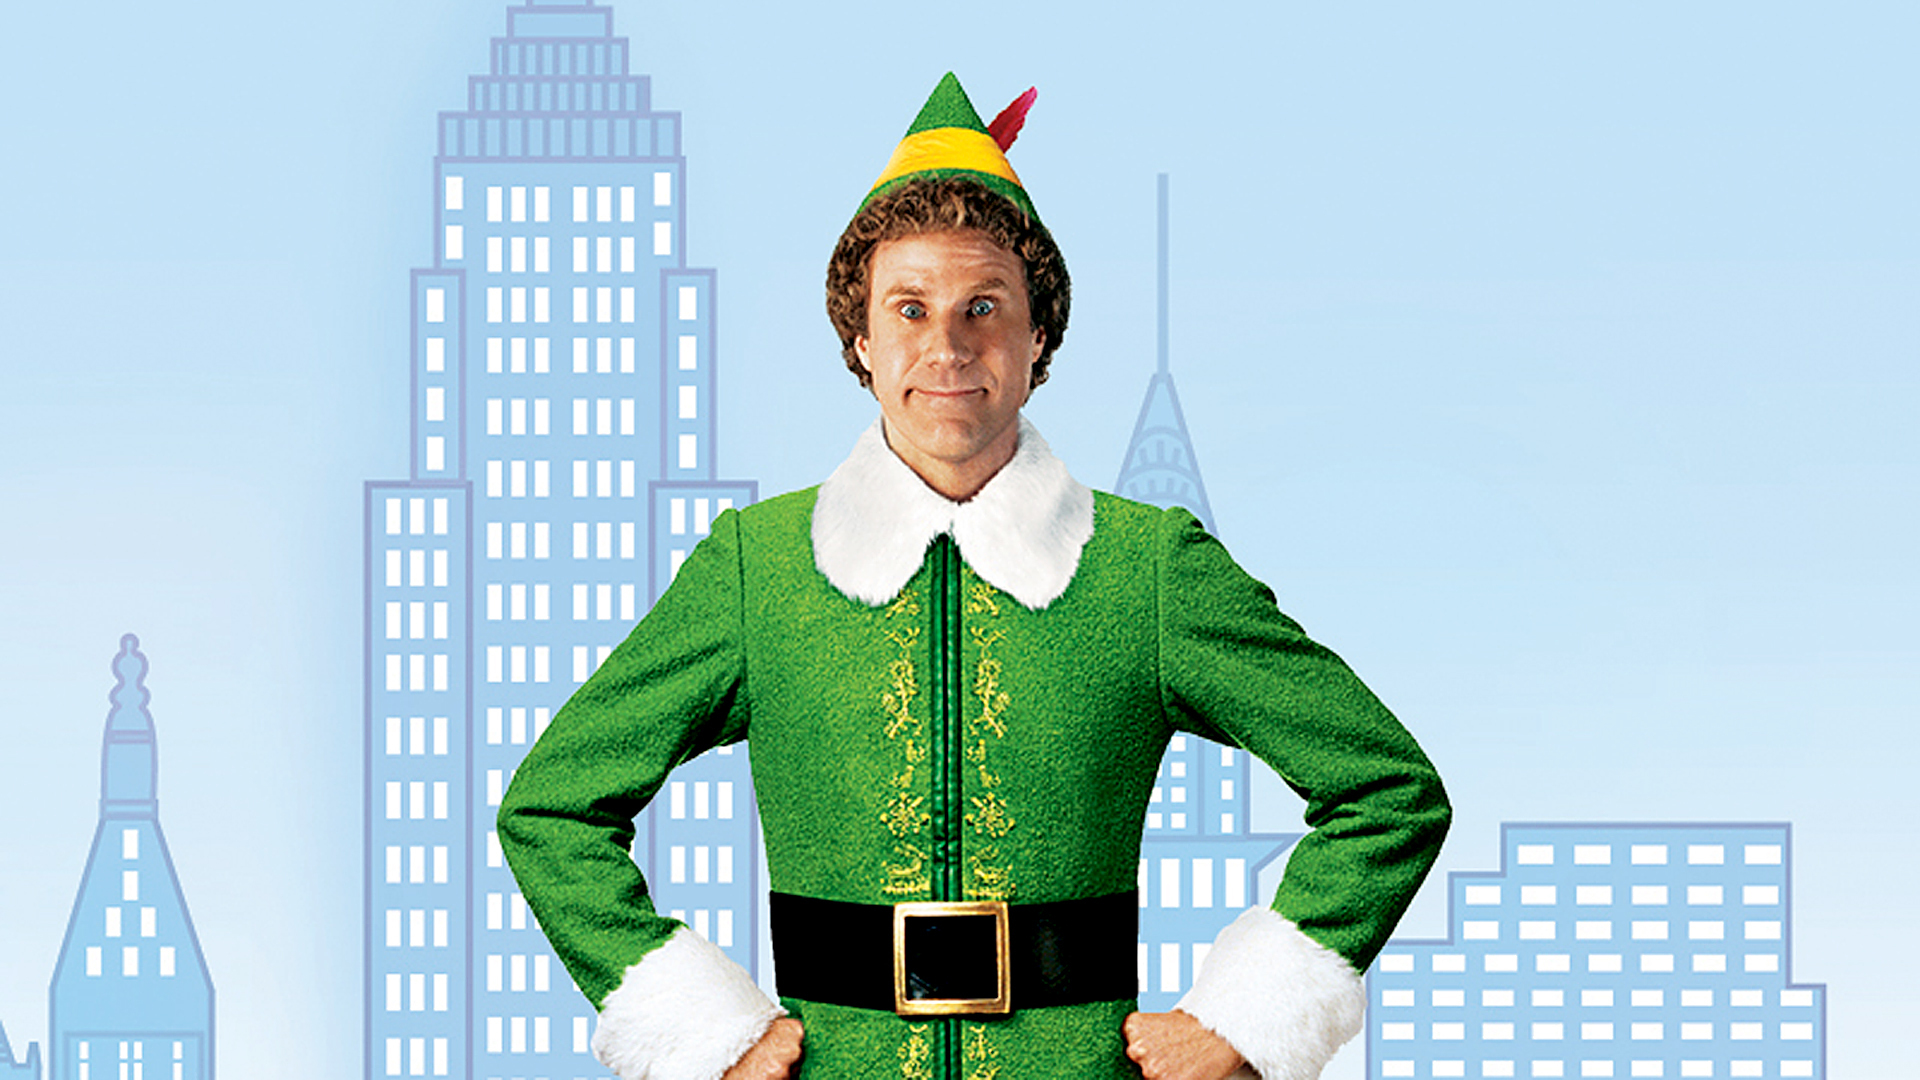 Will Ferrell in the movie Elf